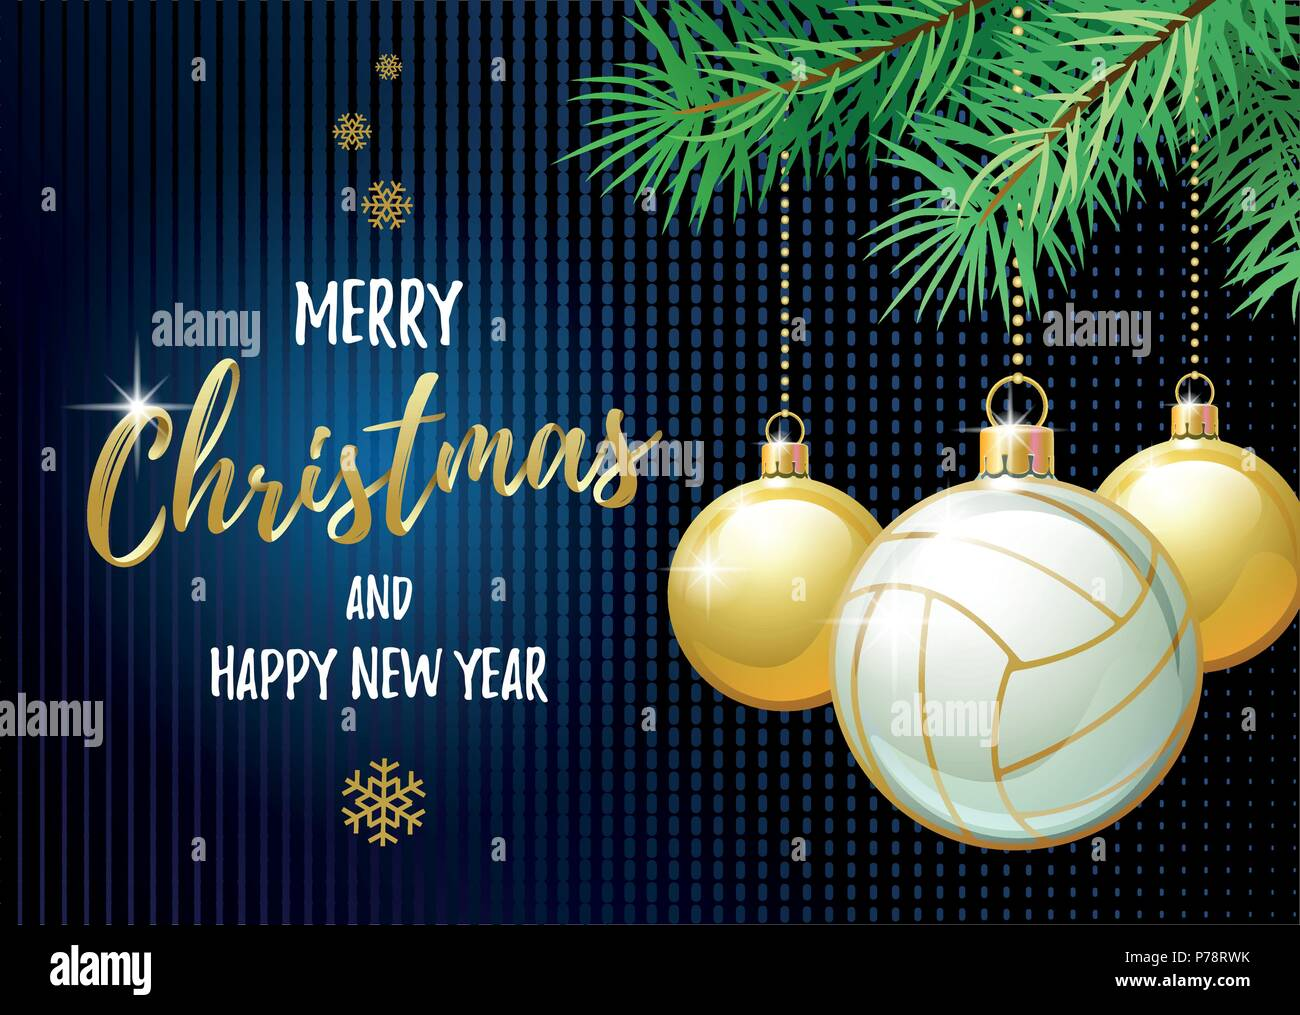 Merry Christmas And Happy New Year Sports Greeting Card Volleyball